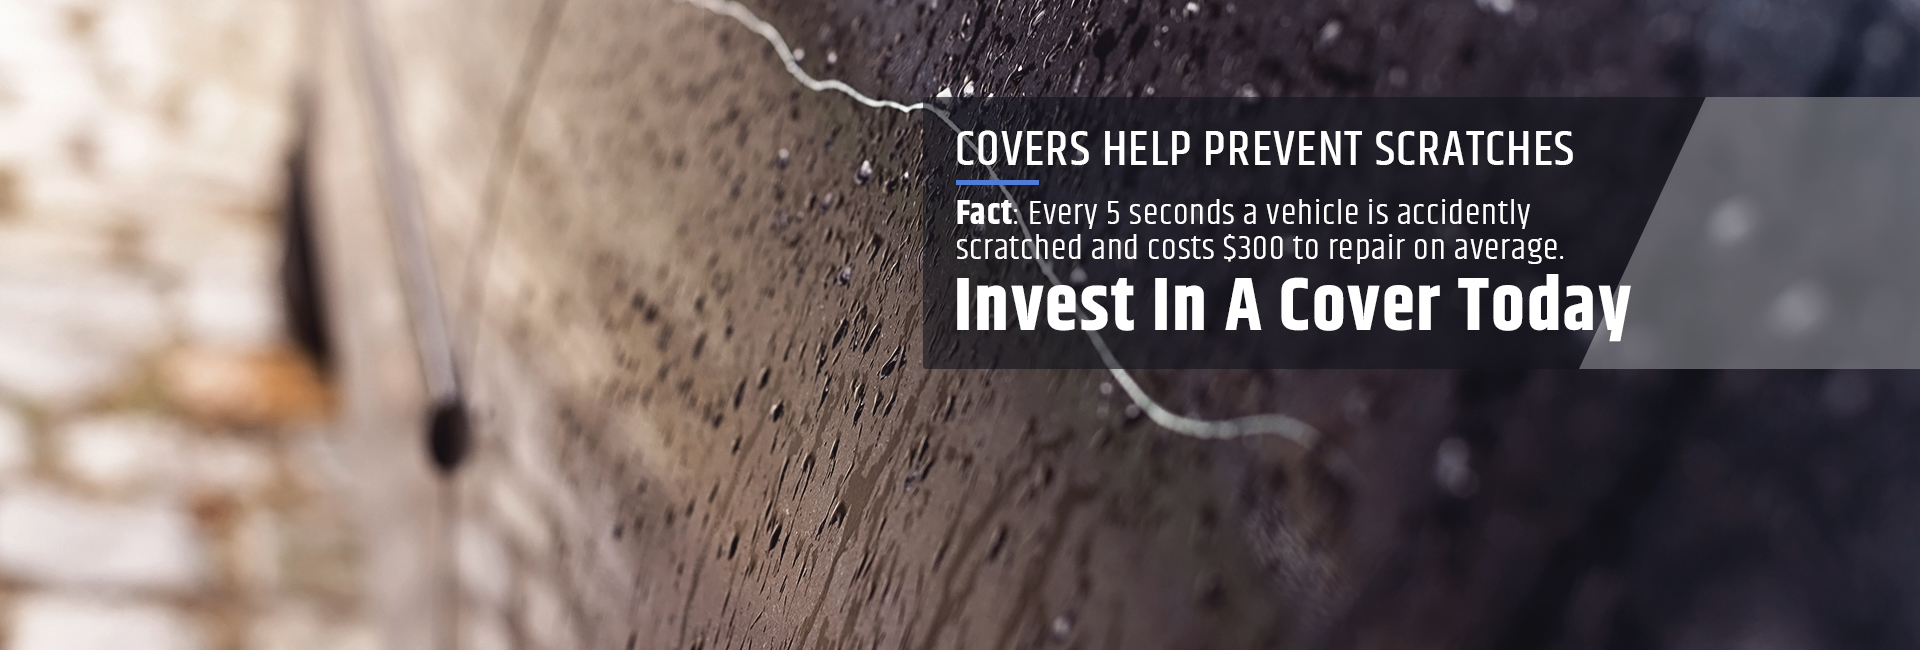 Covers help prevent scratches